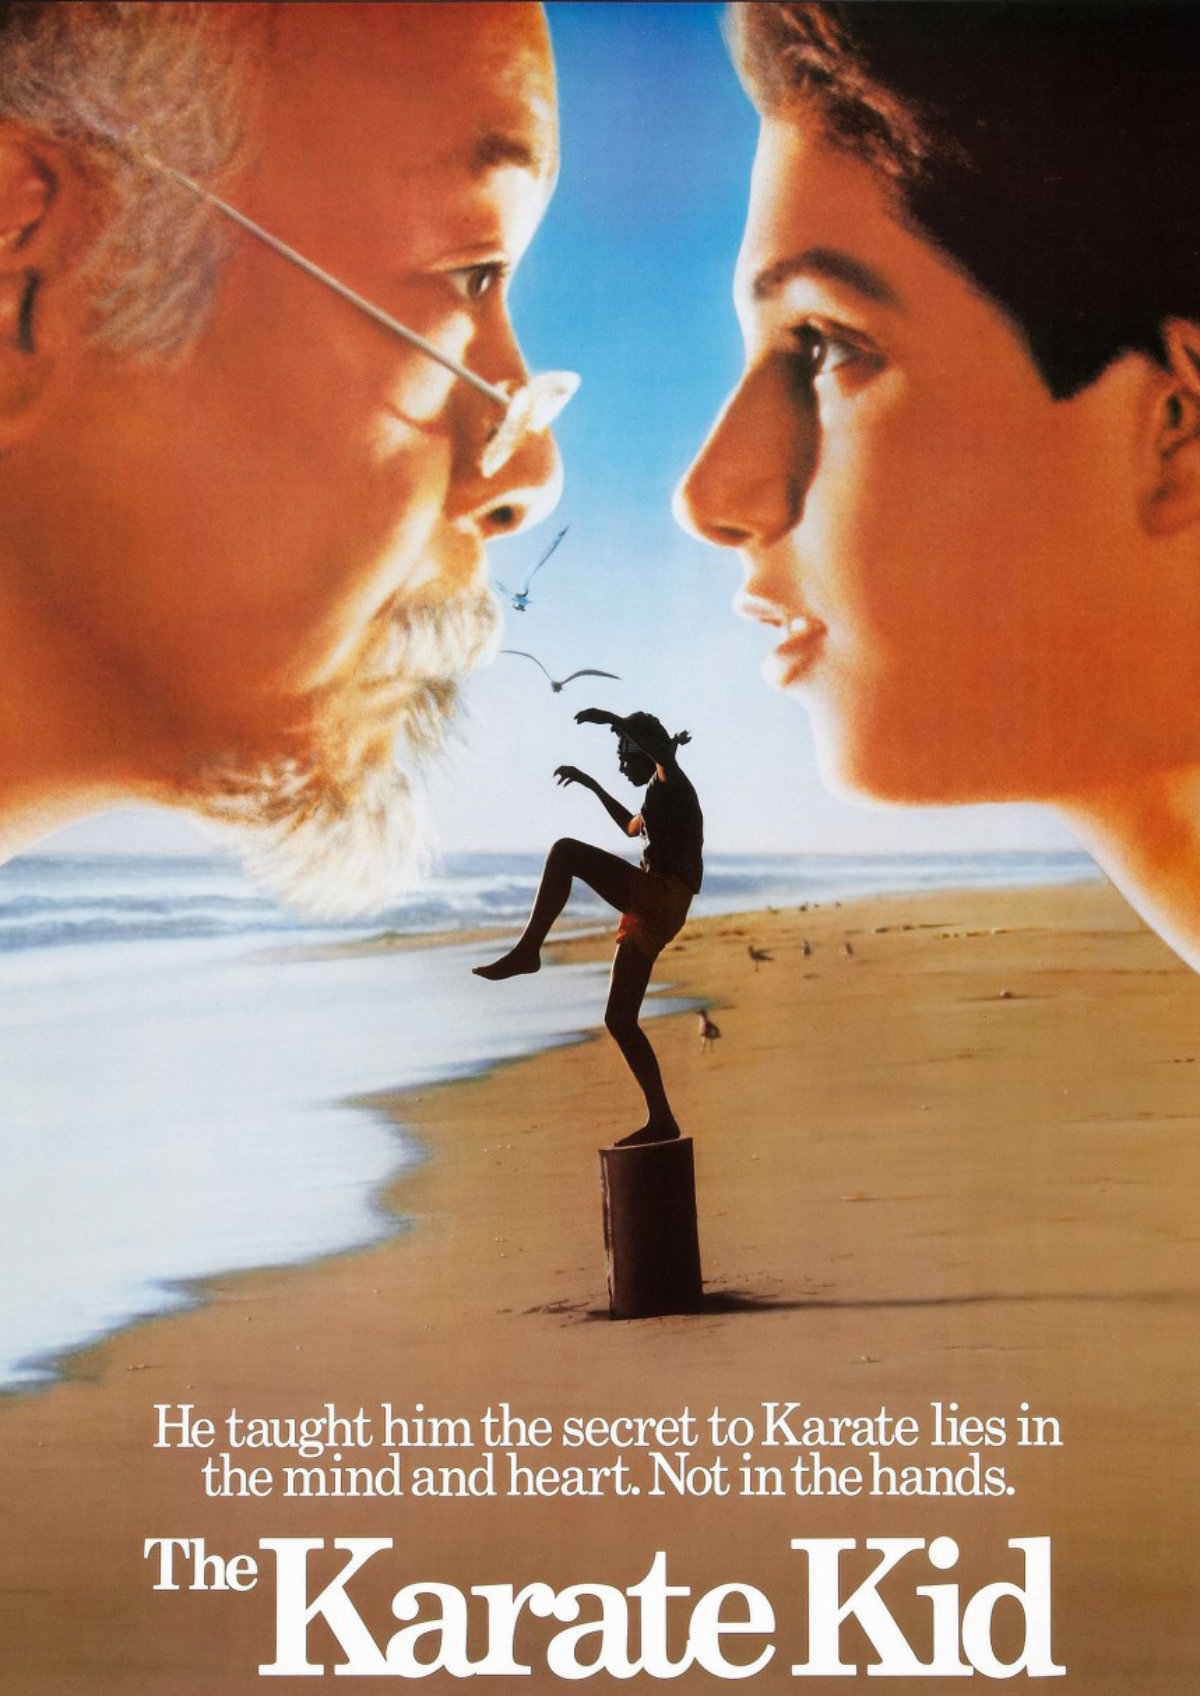 'The Karate Kid (1984)' movie poster